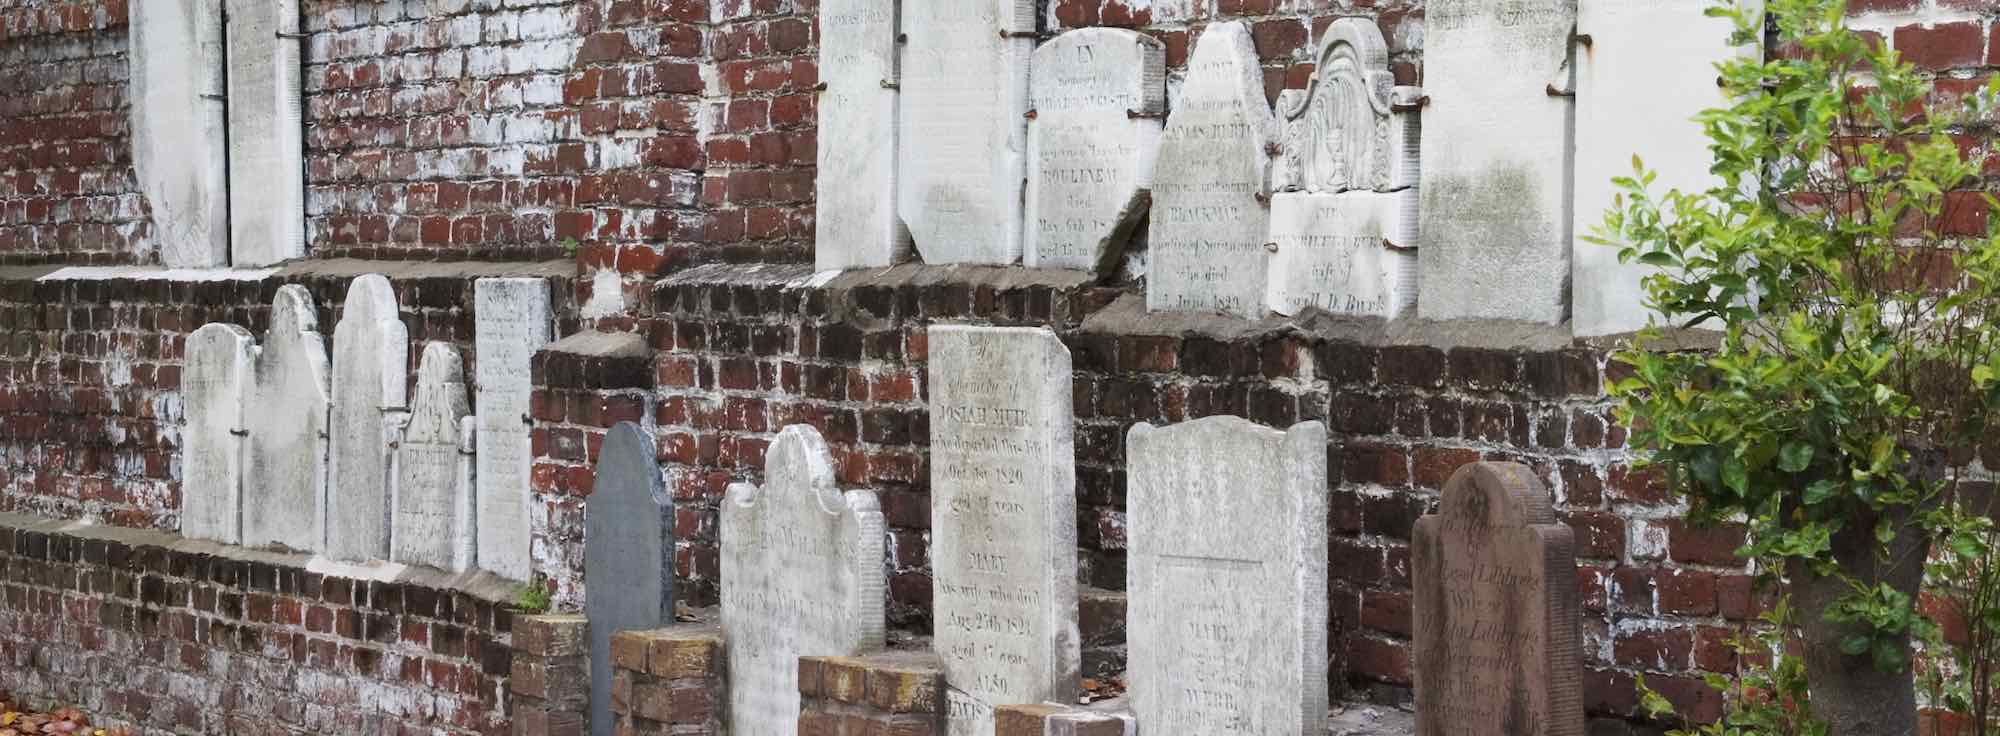 Grave stones mounted on the rear wall in Savannah's Colonial Park Cemetery